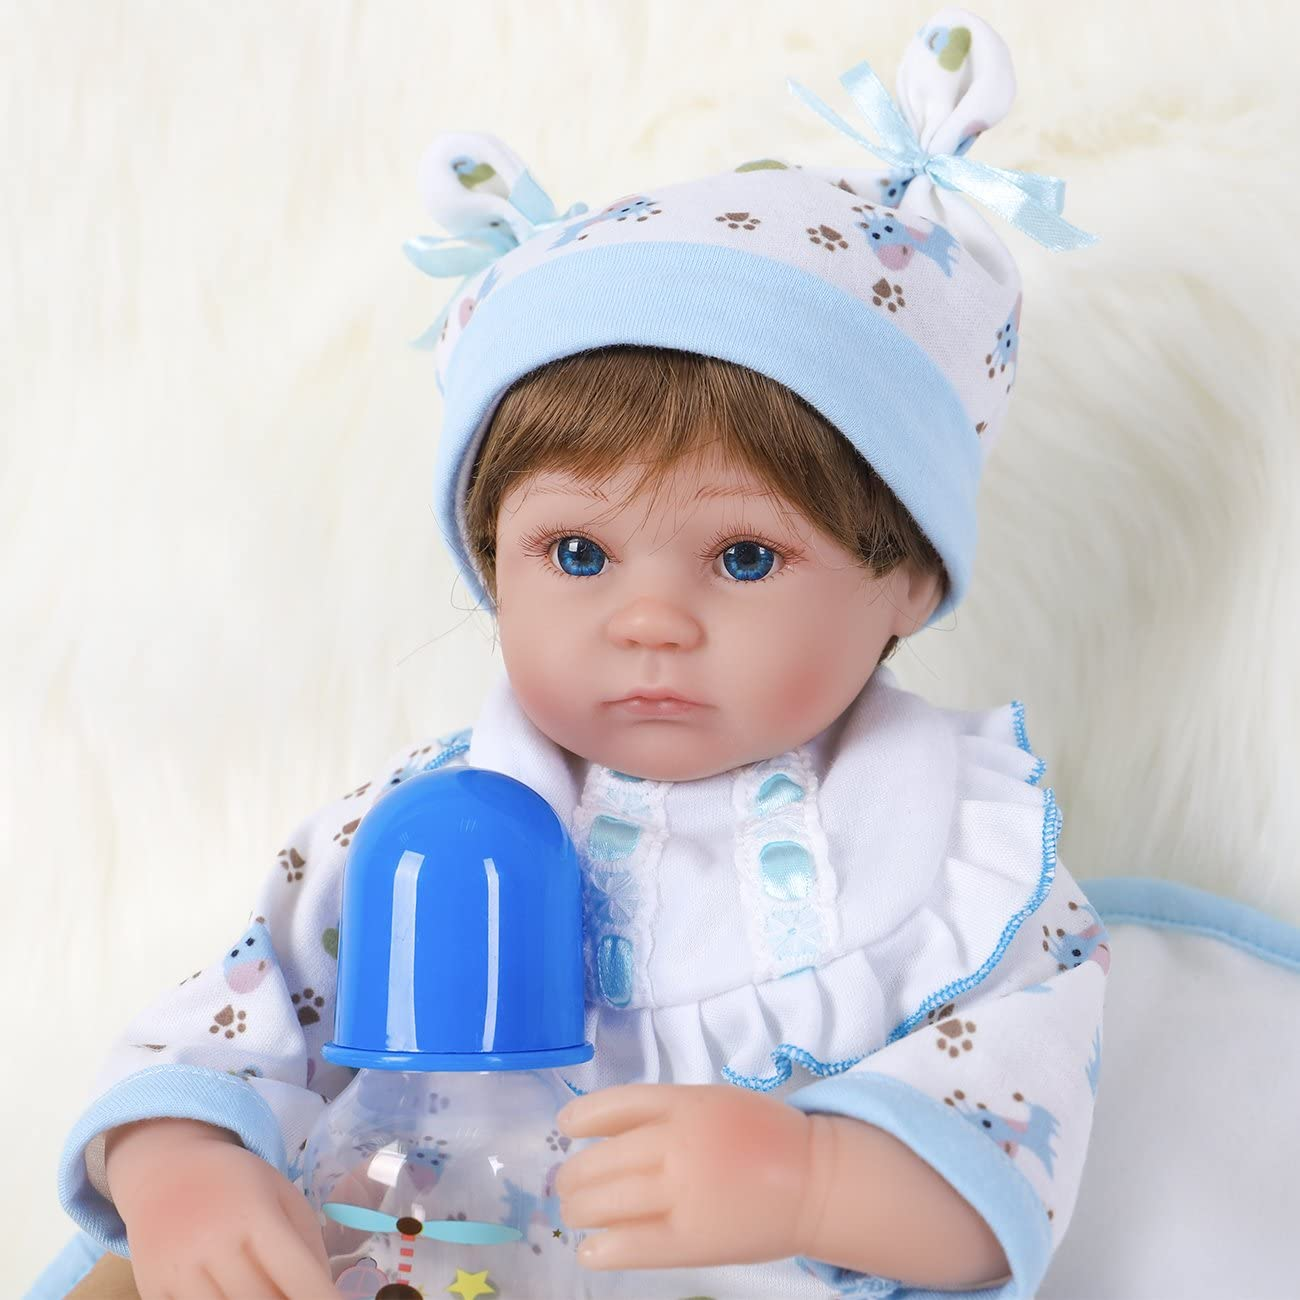 ENA Reborn Baby Doll Weighted Soft Body Silicone Vinyl Baby Boy 16 inch Realistic Lifelike Doll Gift Set for Ages